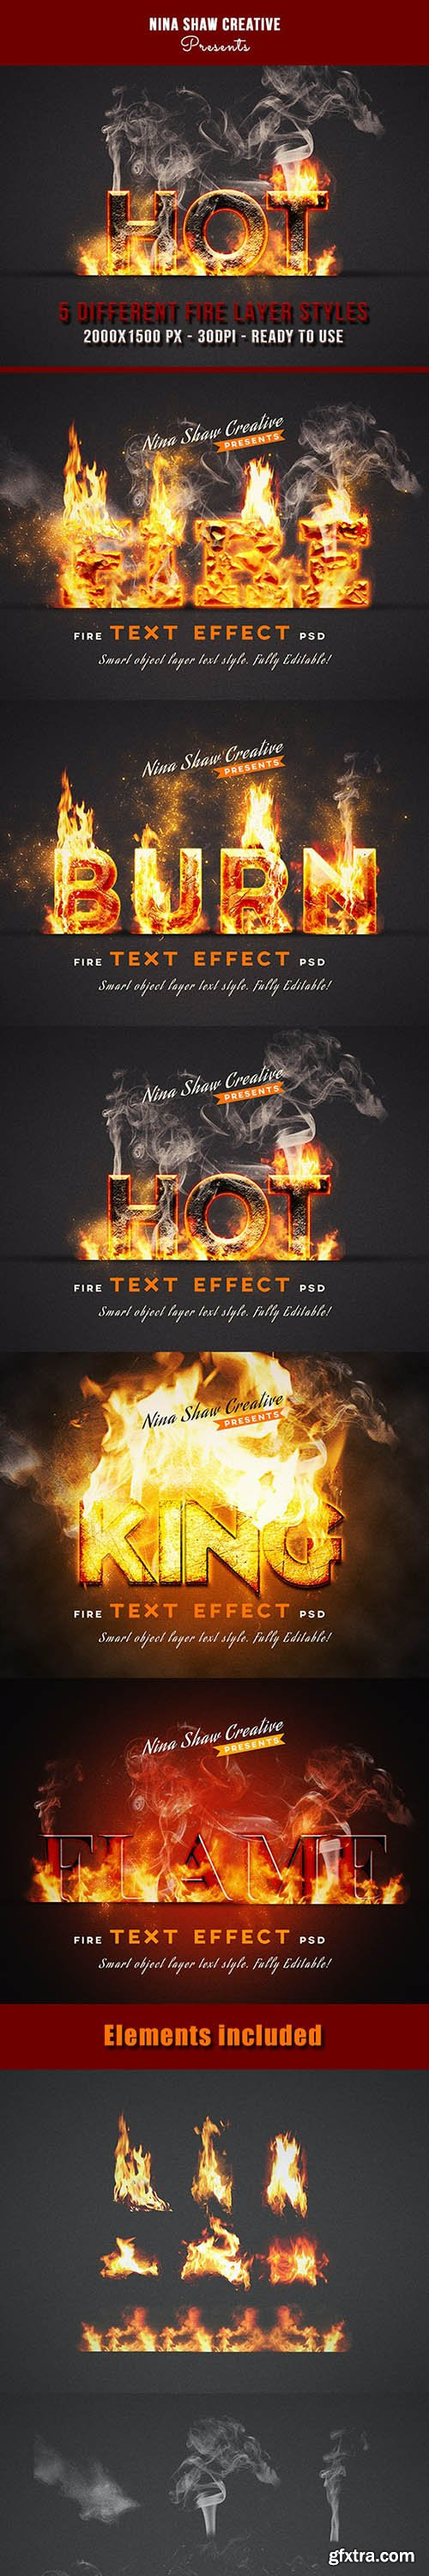 GraphicRiver - Fire Text Effects 27755366